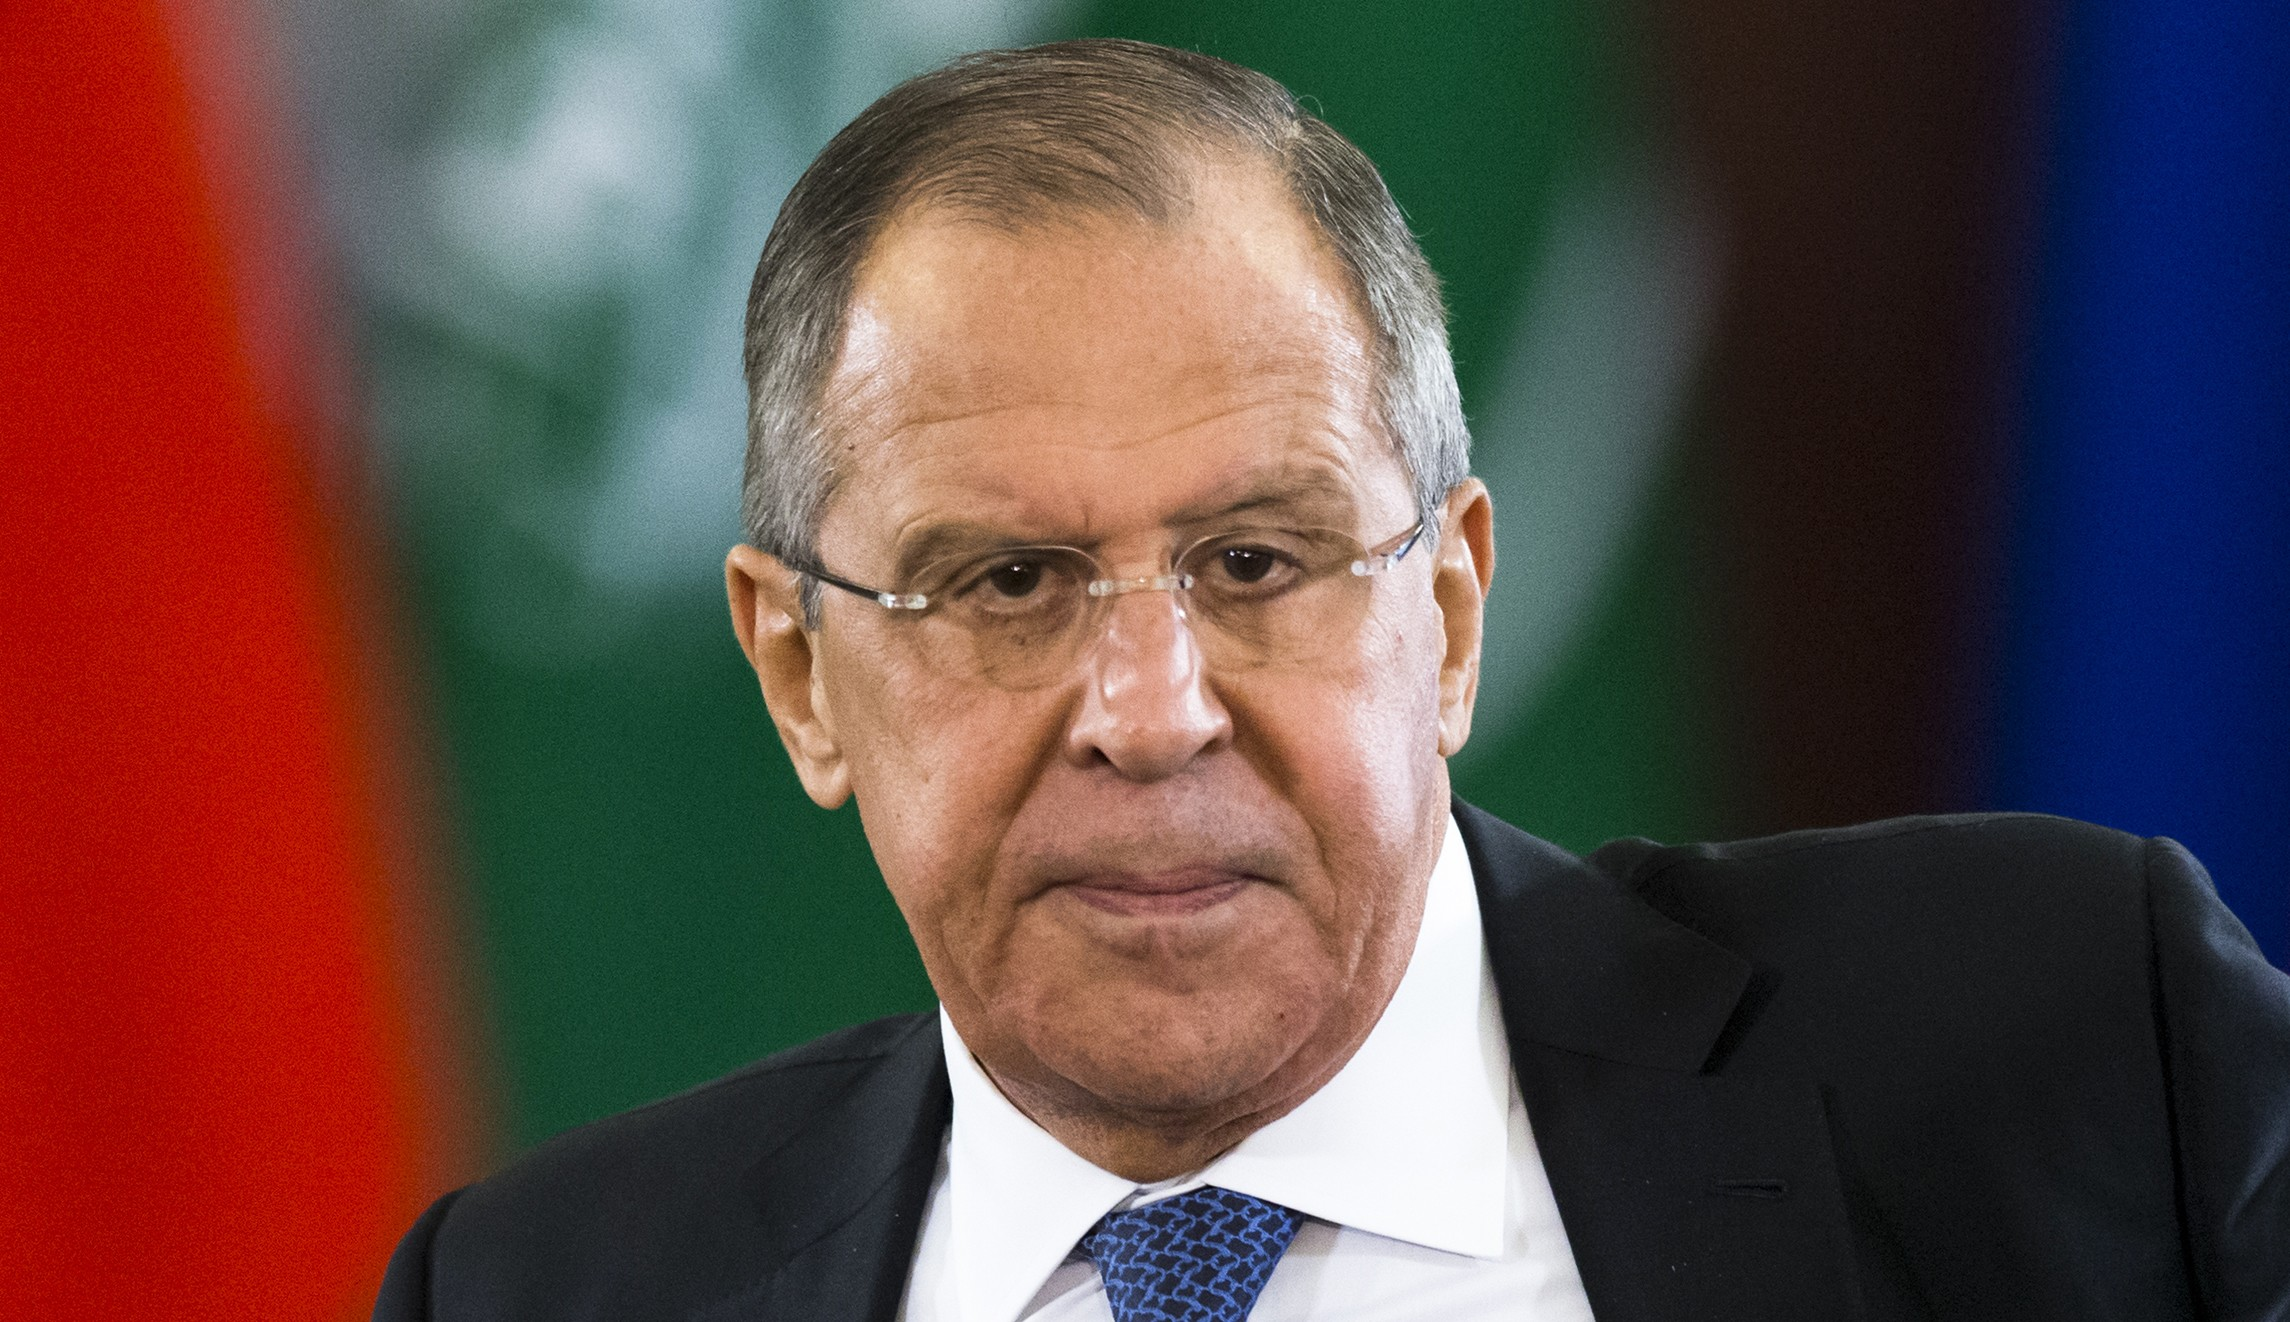 Lavrov: Idlib Military Plan To Be Designed In Accordance With Humanitarian Law